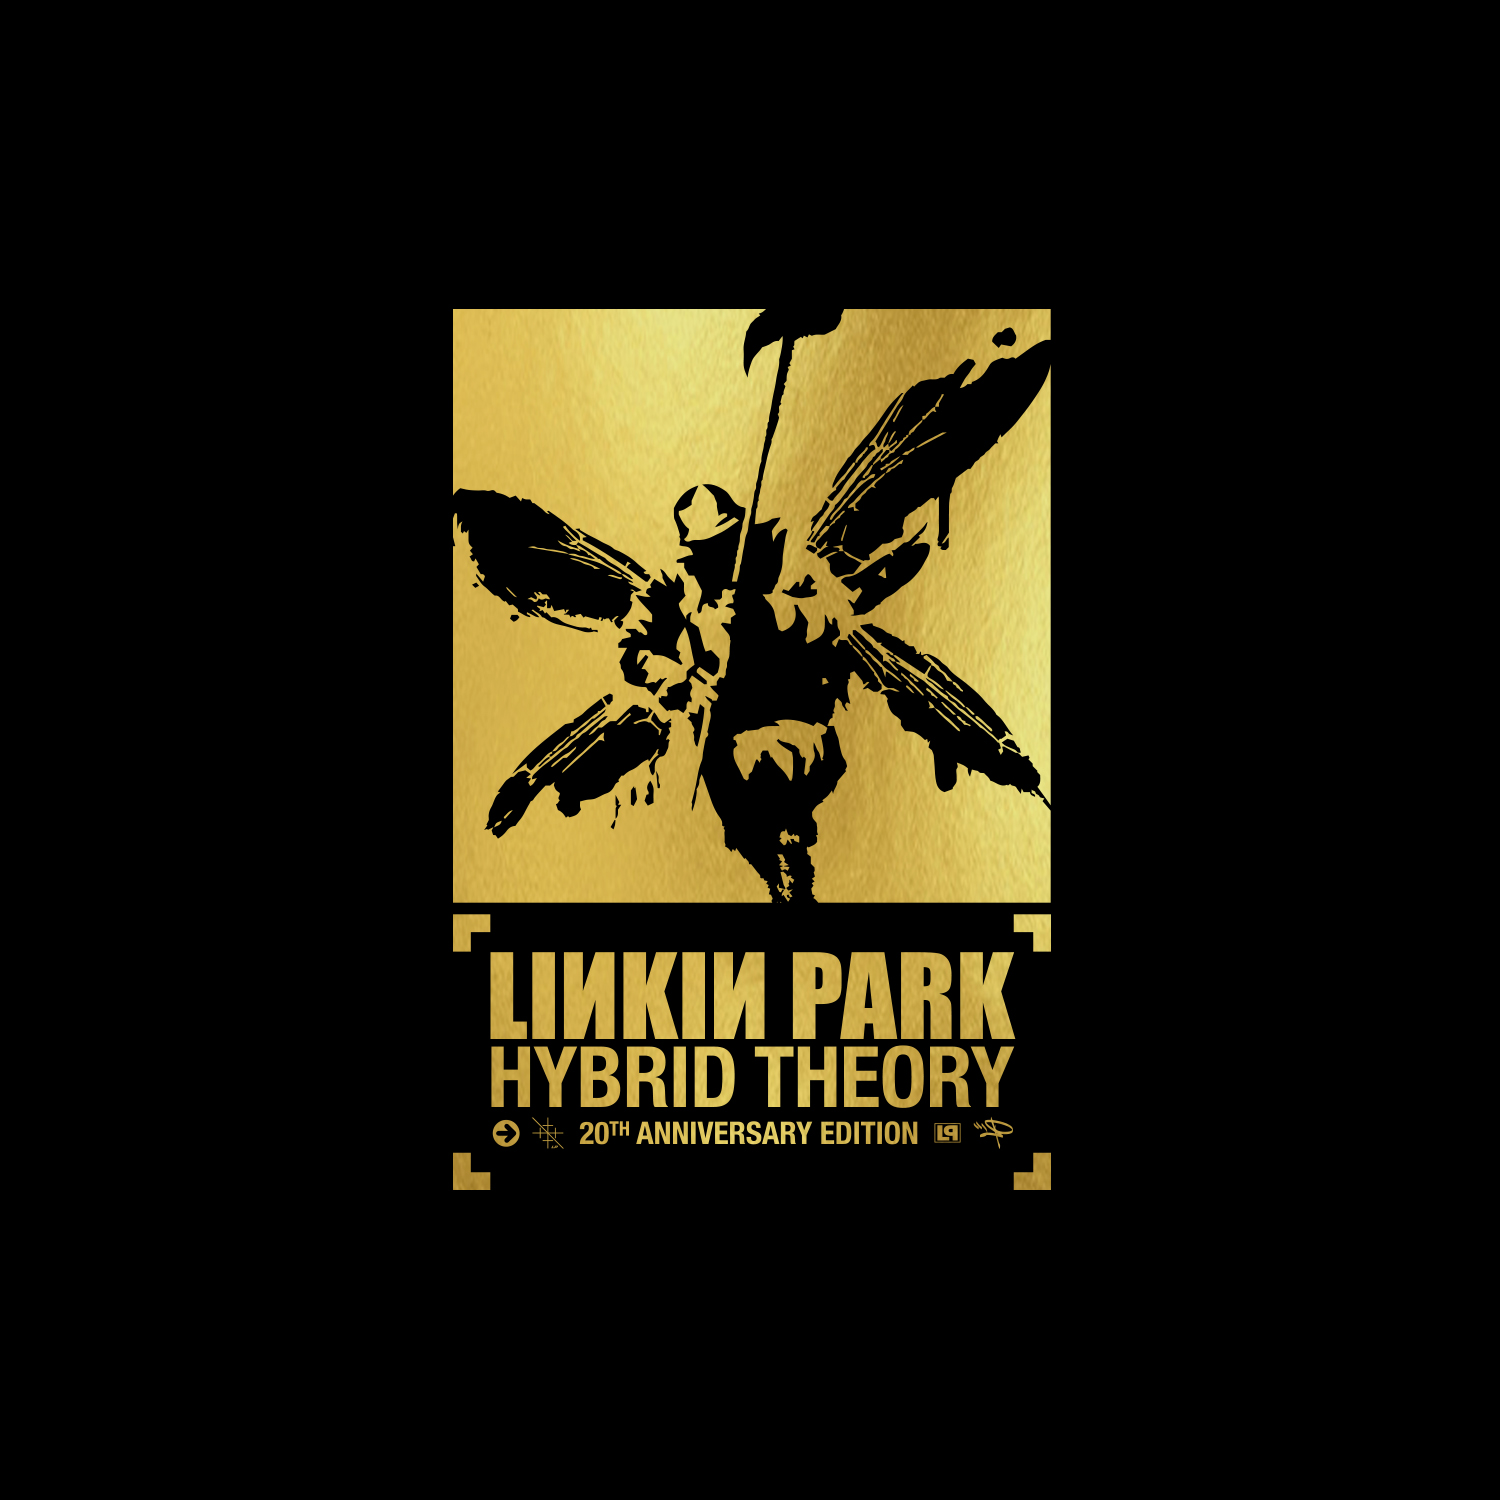 Linkin Park - Hybrid Theory: 20th Anniversary Edition [Super Deluxe Edition] | Craft & Vinyl - #YouBelongHere